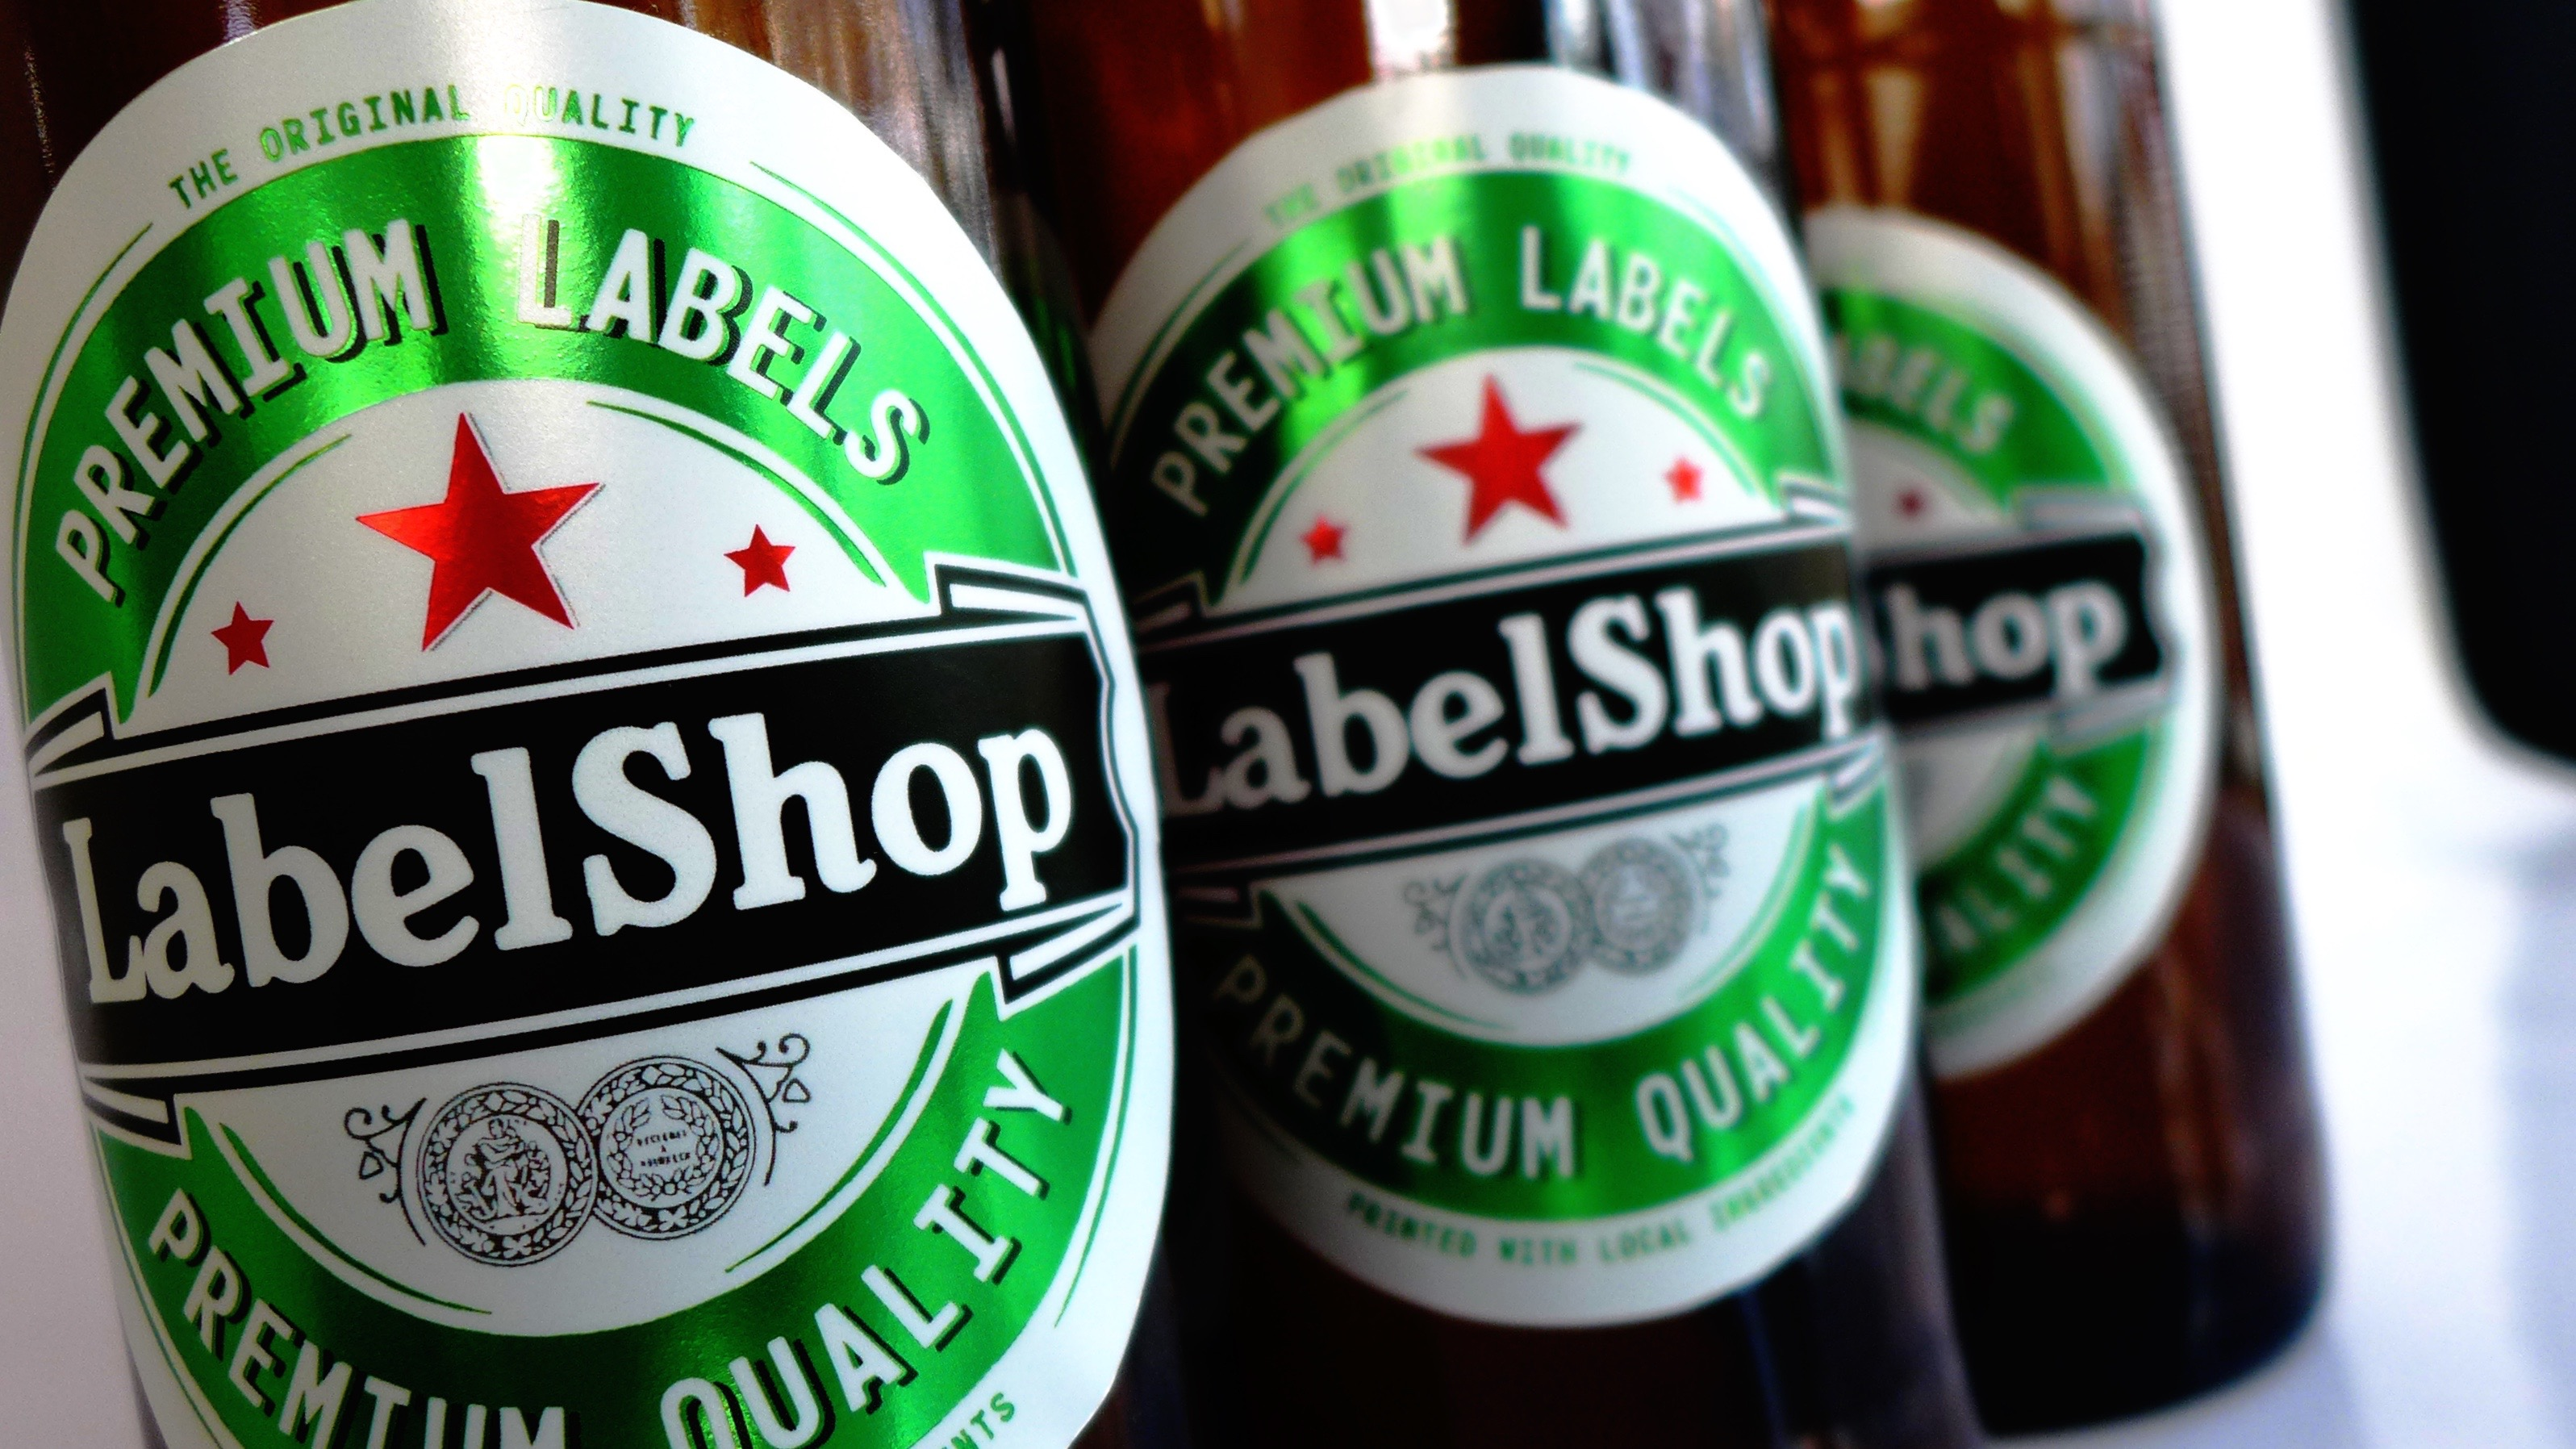 Labelshop | We're going to change your label ordering experience